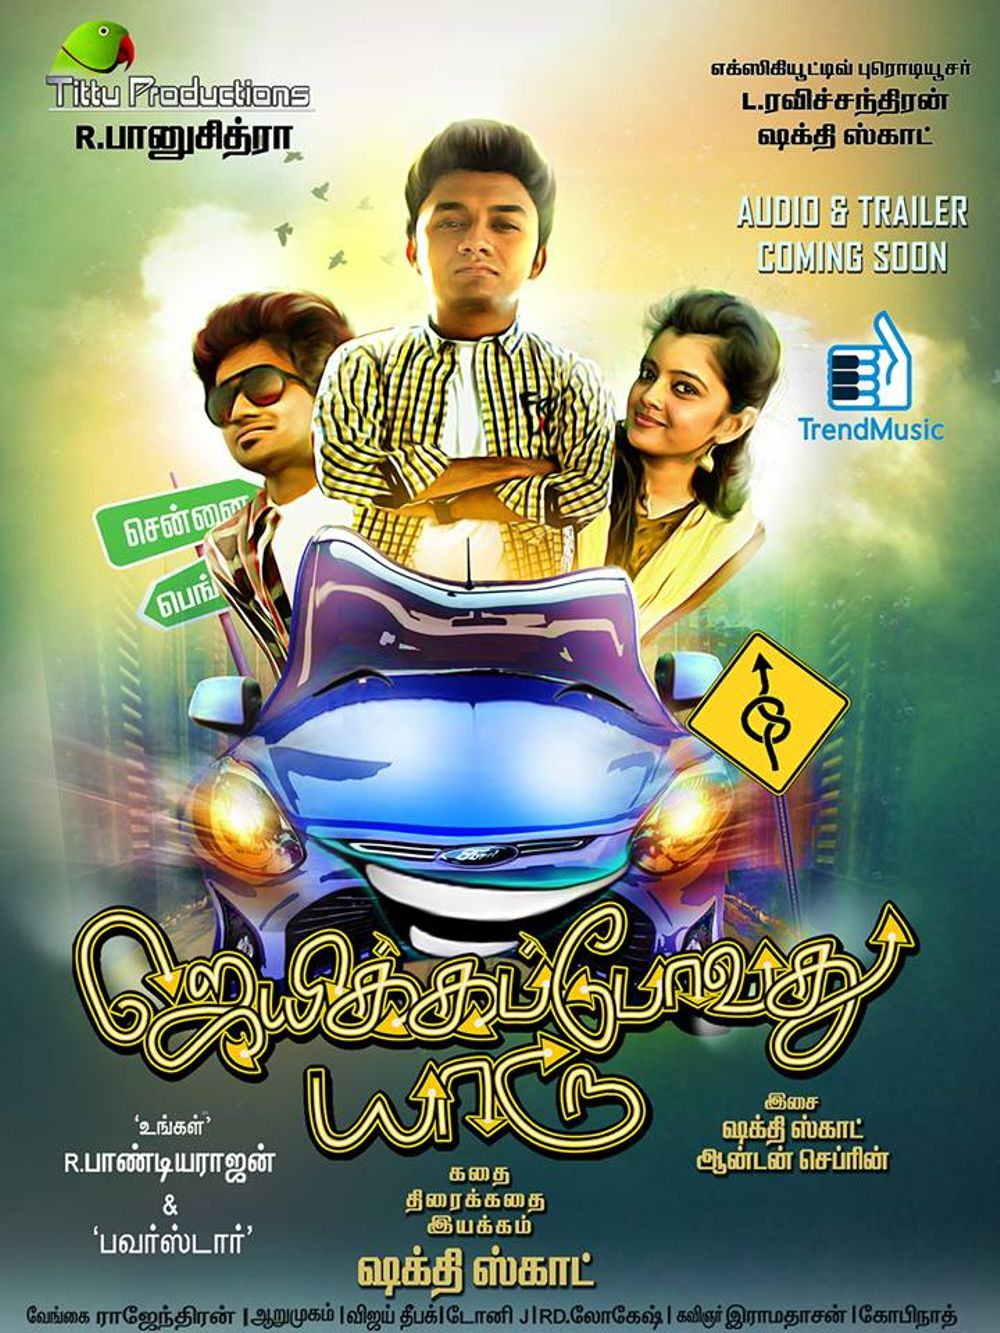 Jaikka Povadhu Yaaru Movie Review